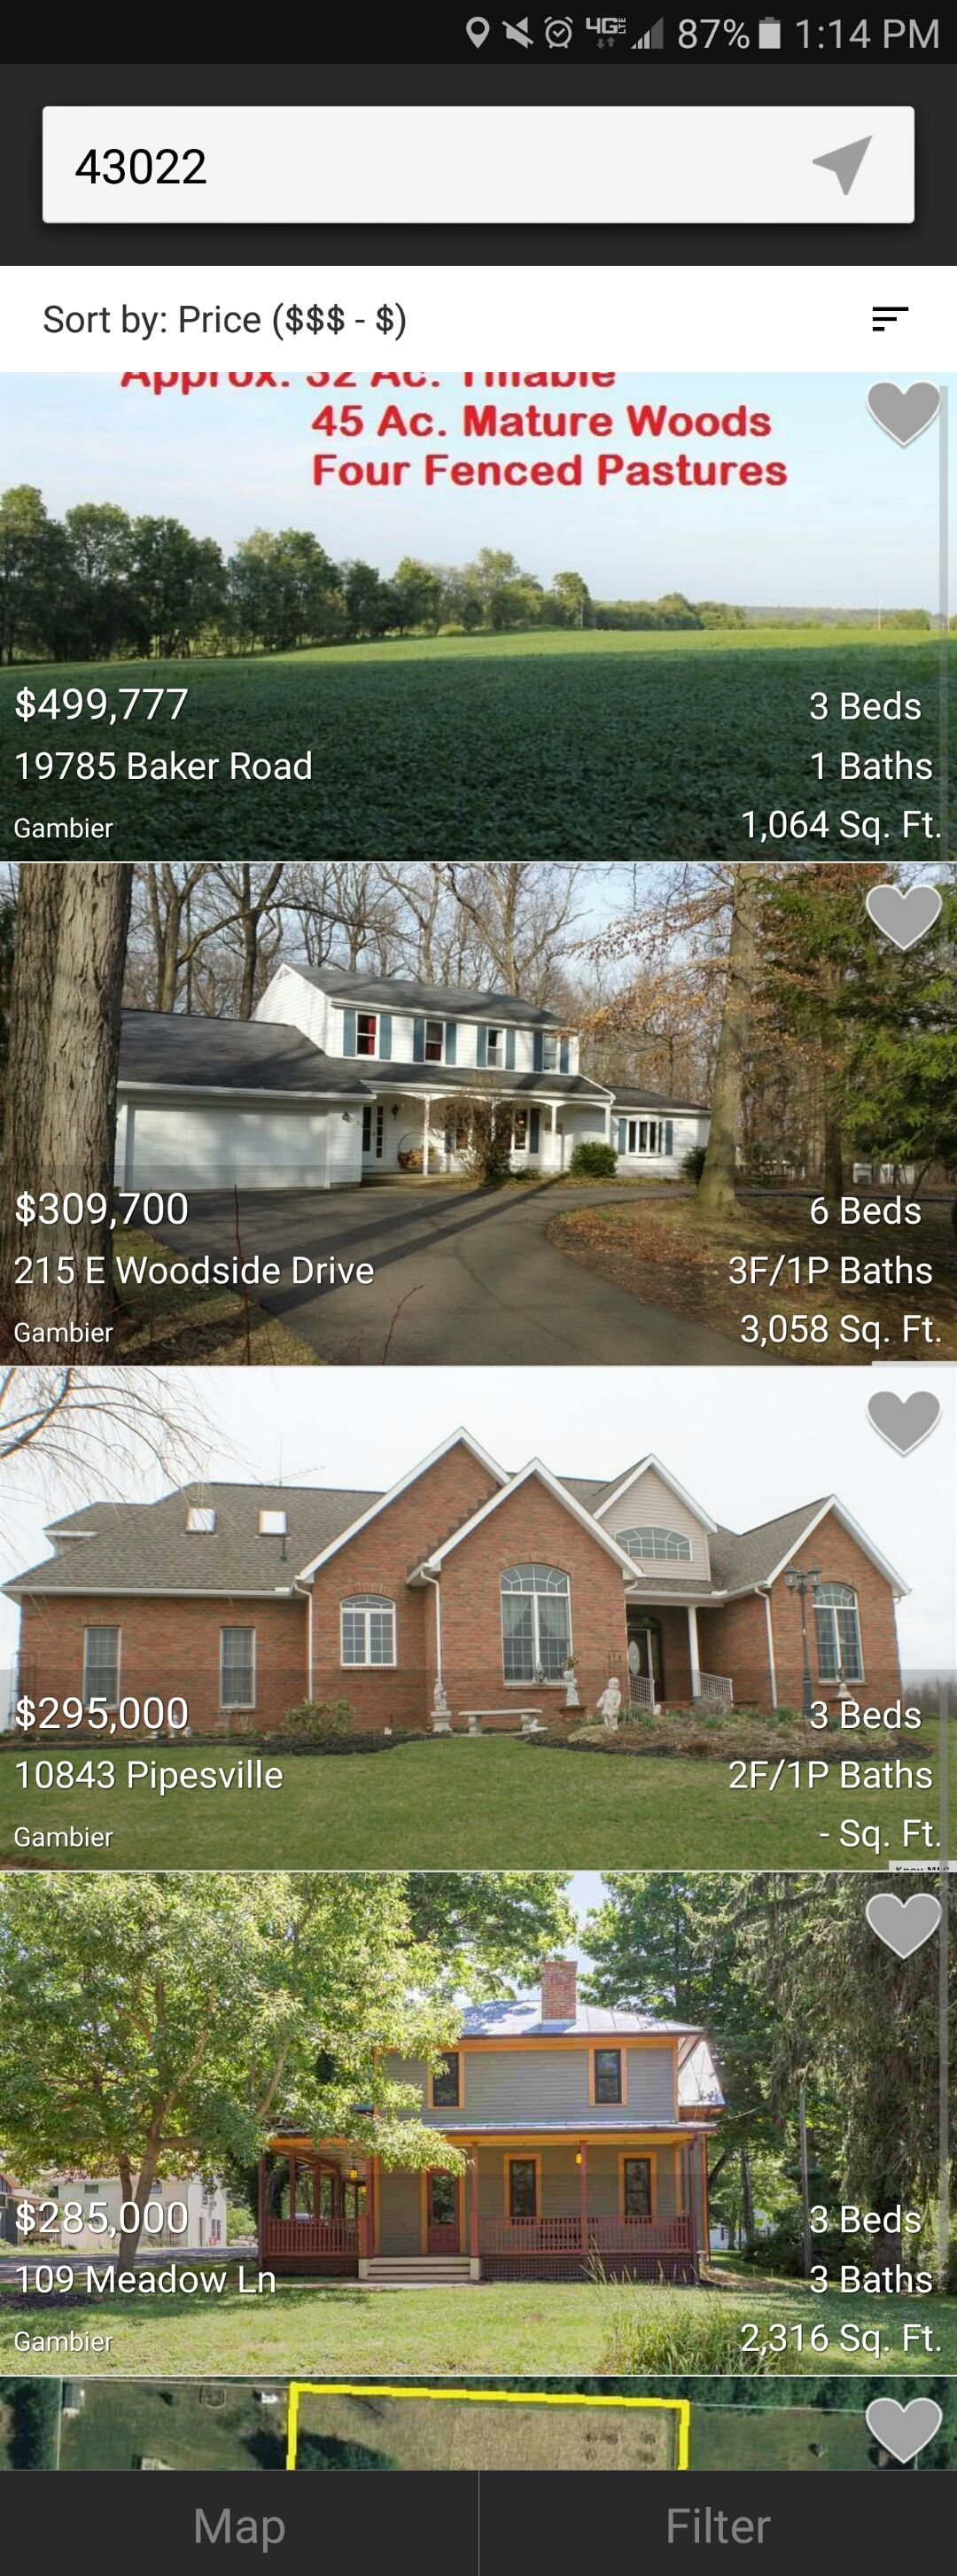 Find homes for sale in gambier ohio with ease by using the